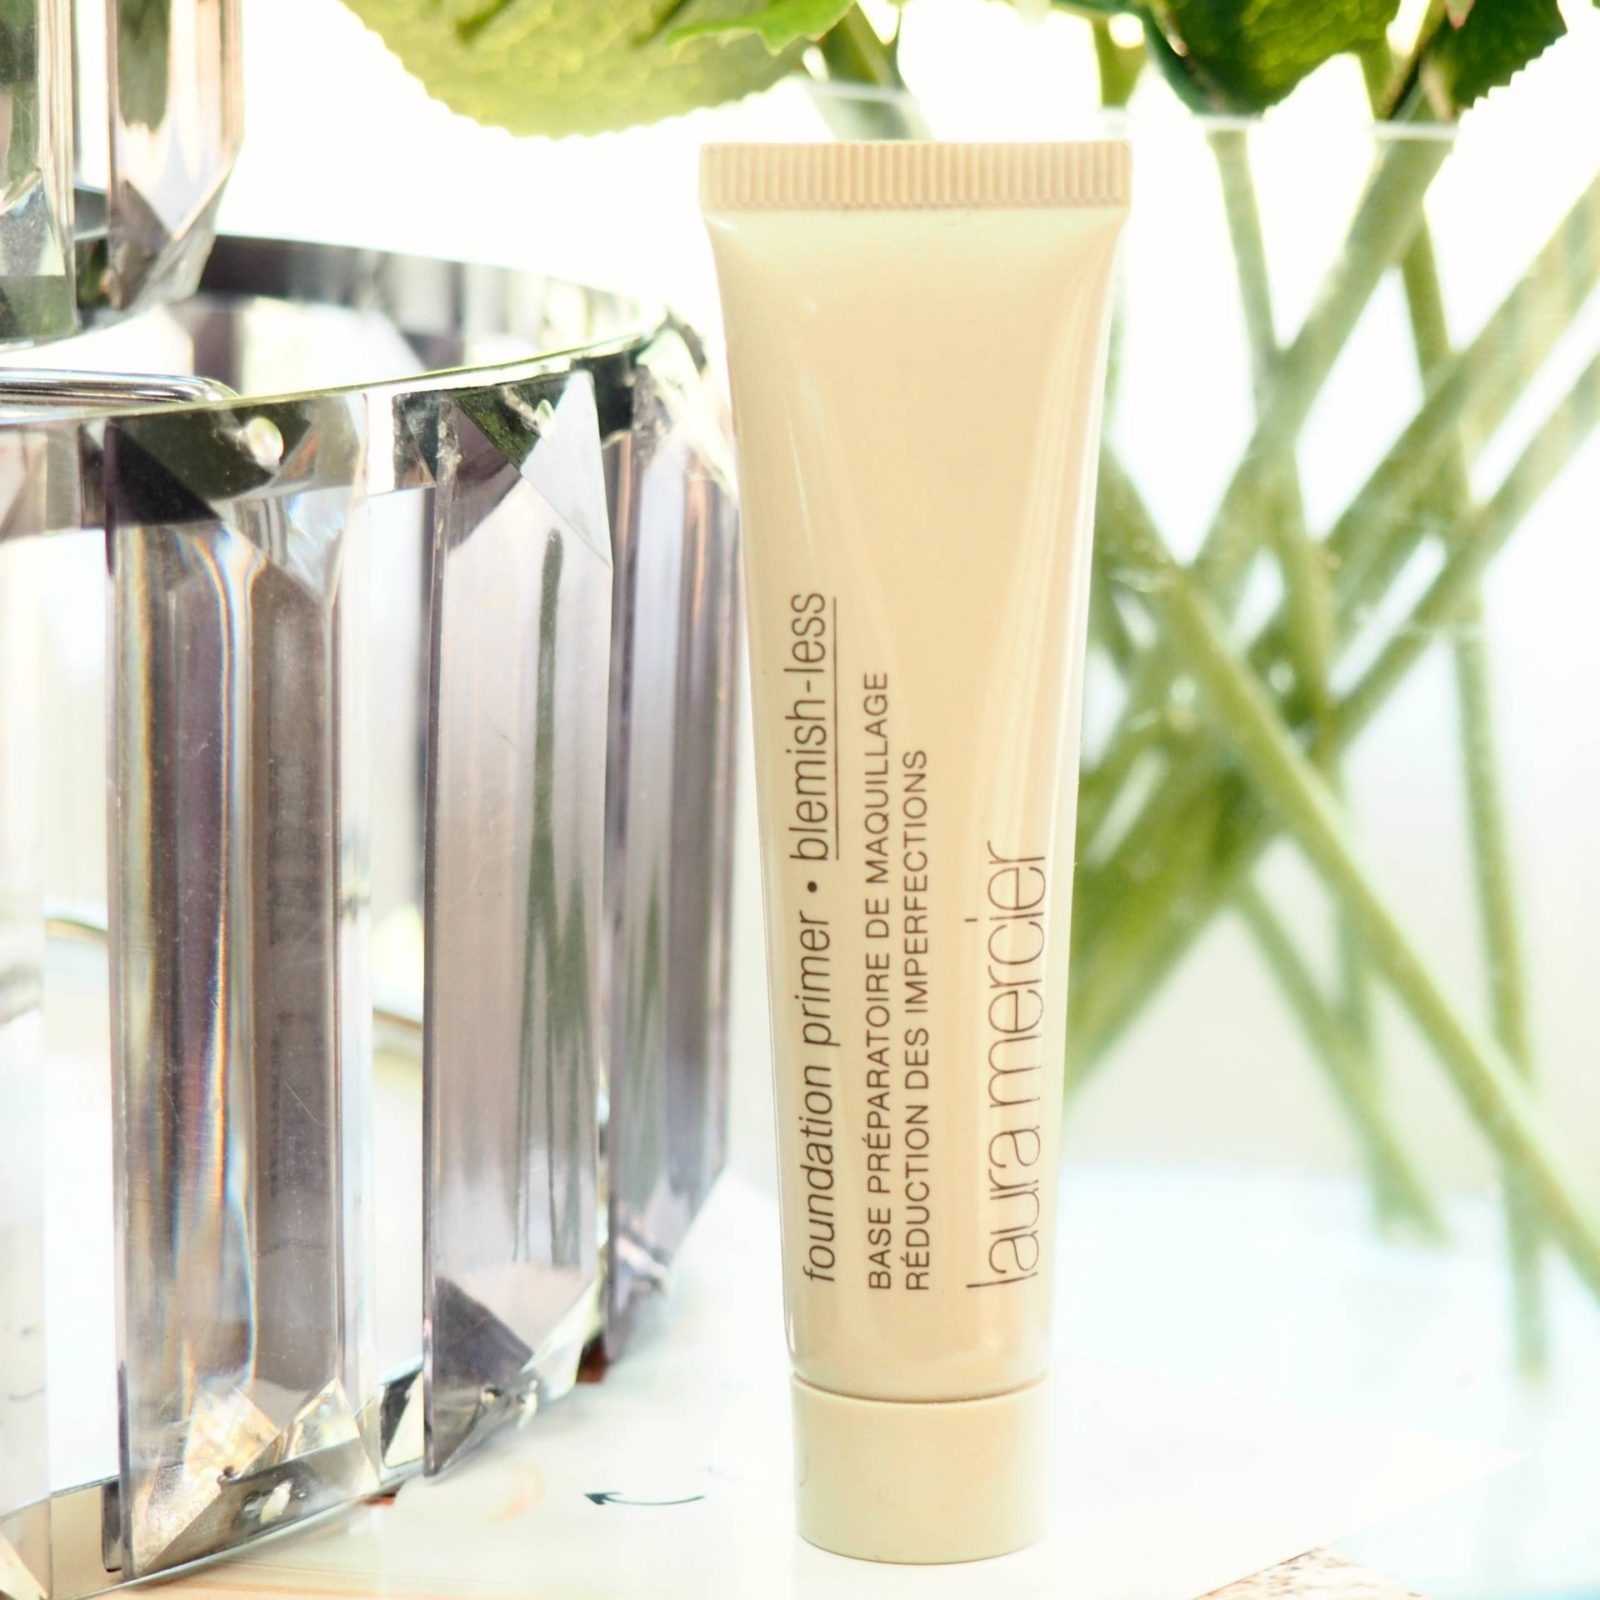 Laura Mercier Blemishless Foundation Primer